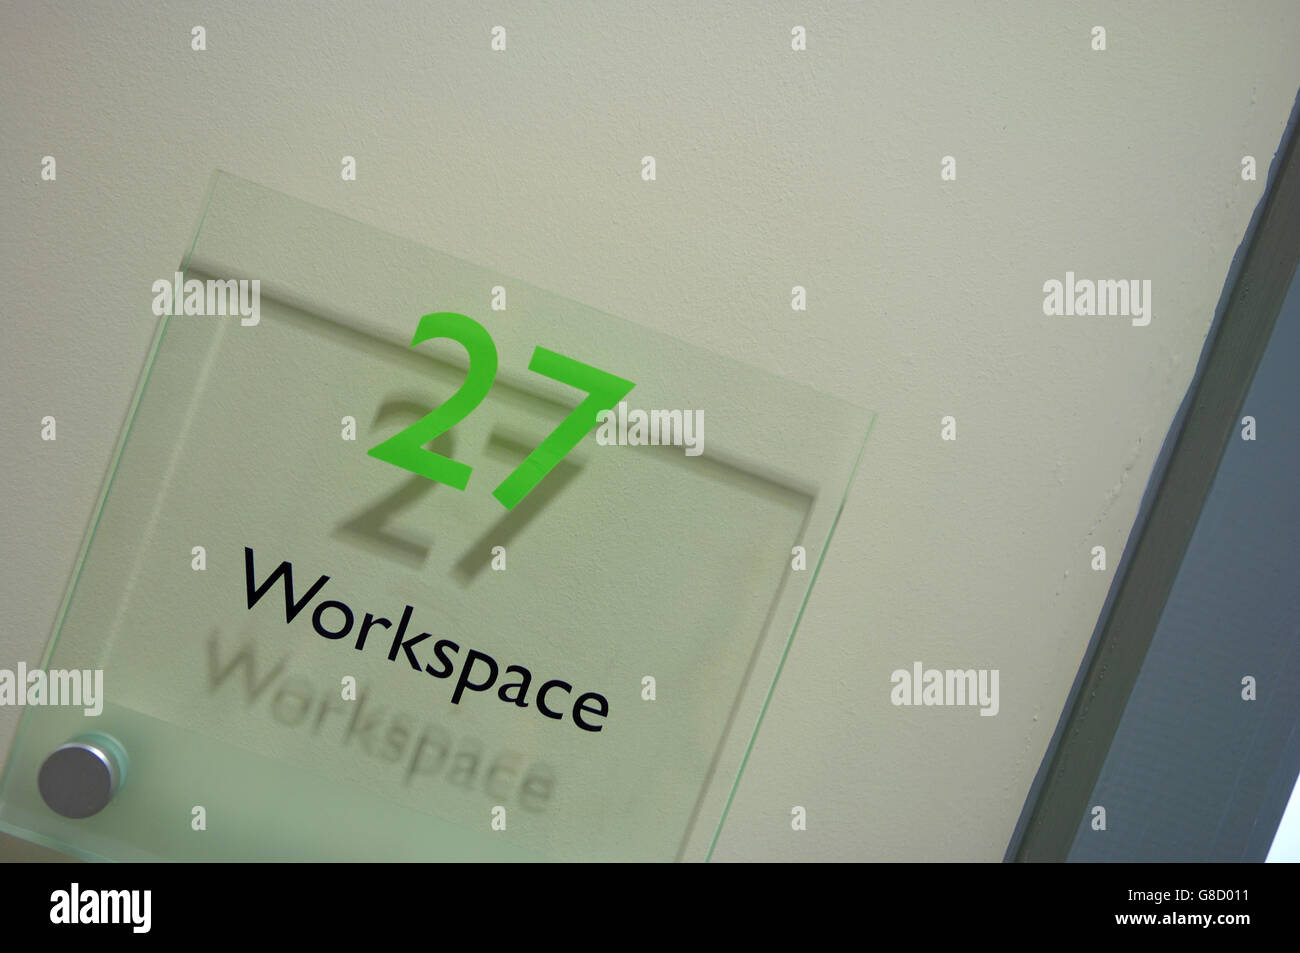 Workspace small business premises. England - Stock Image